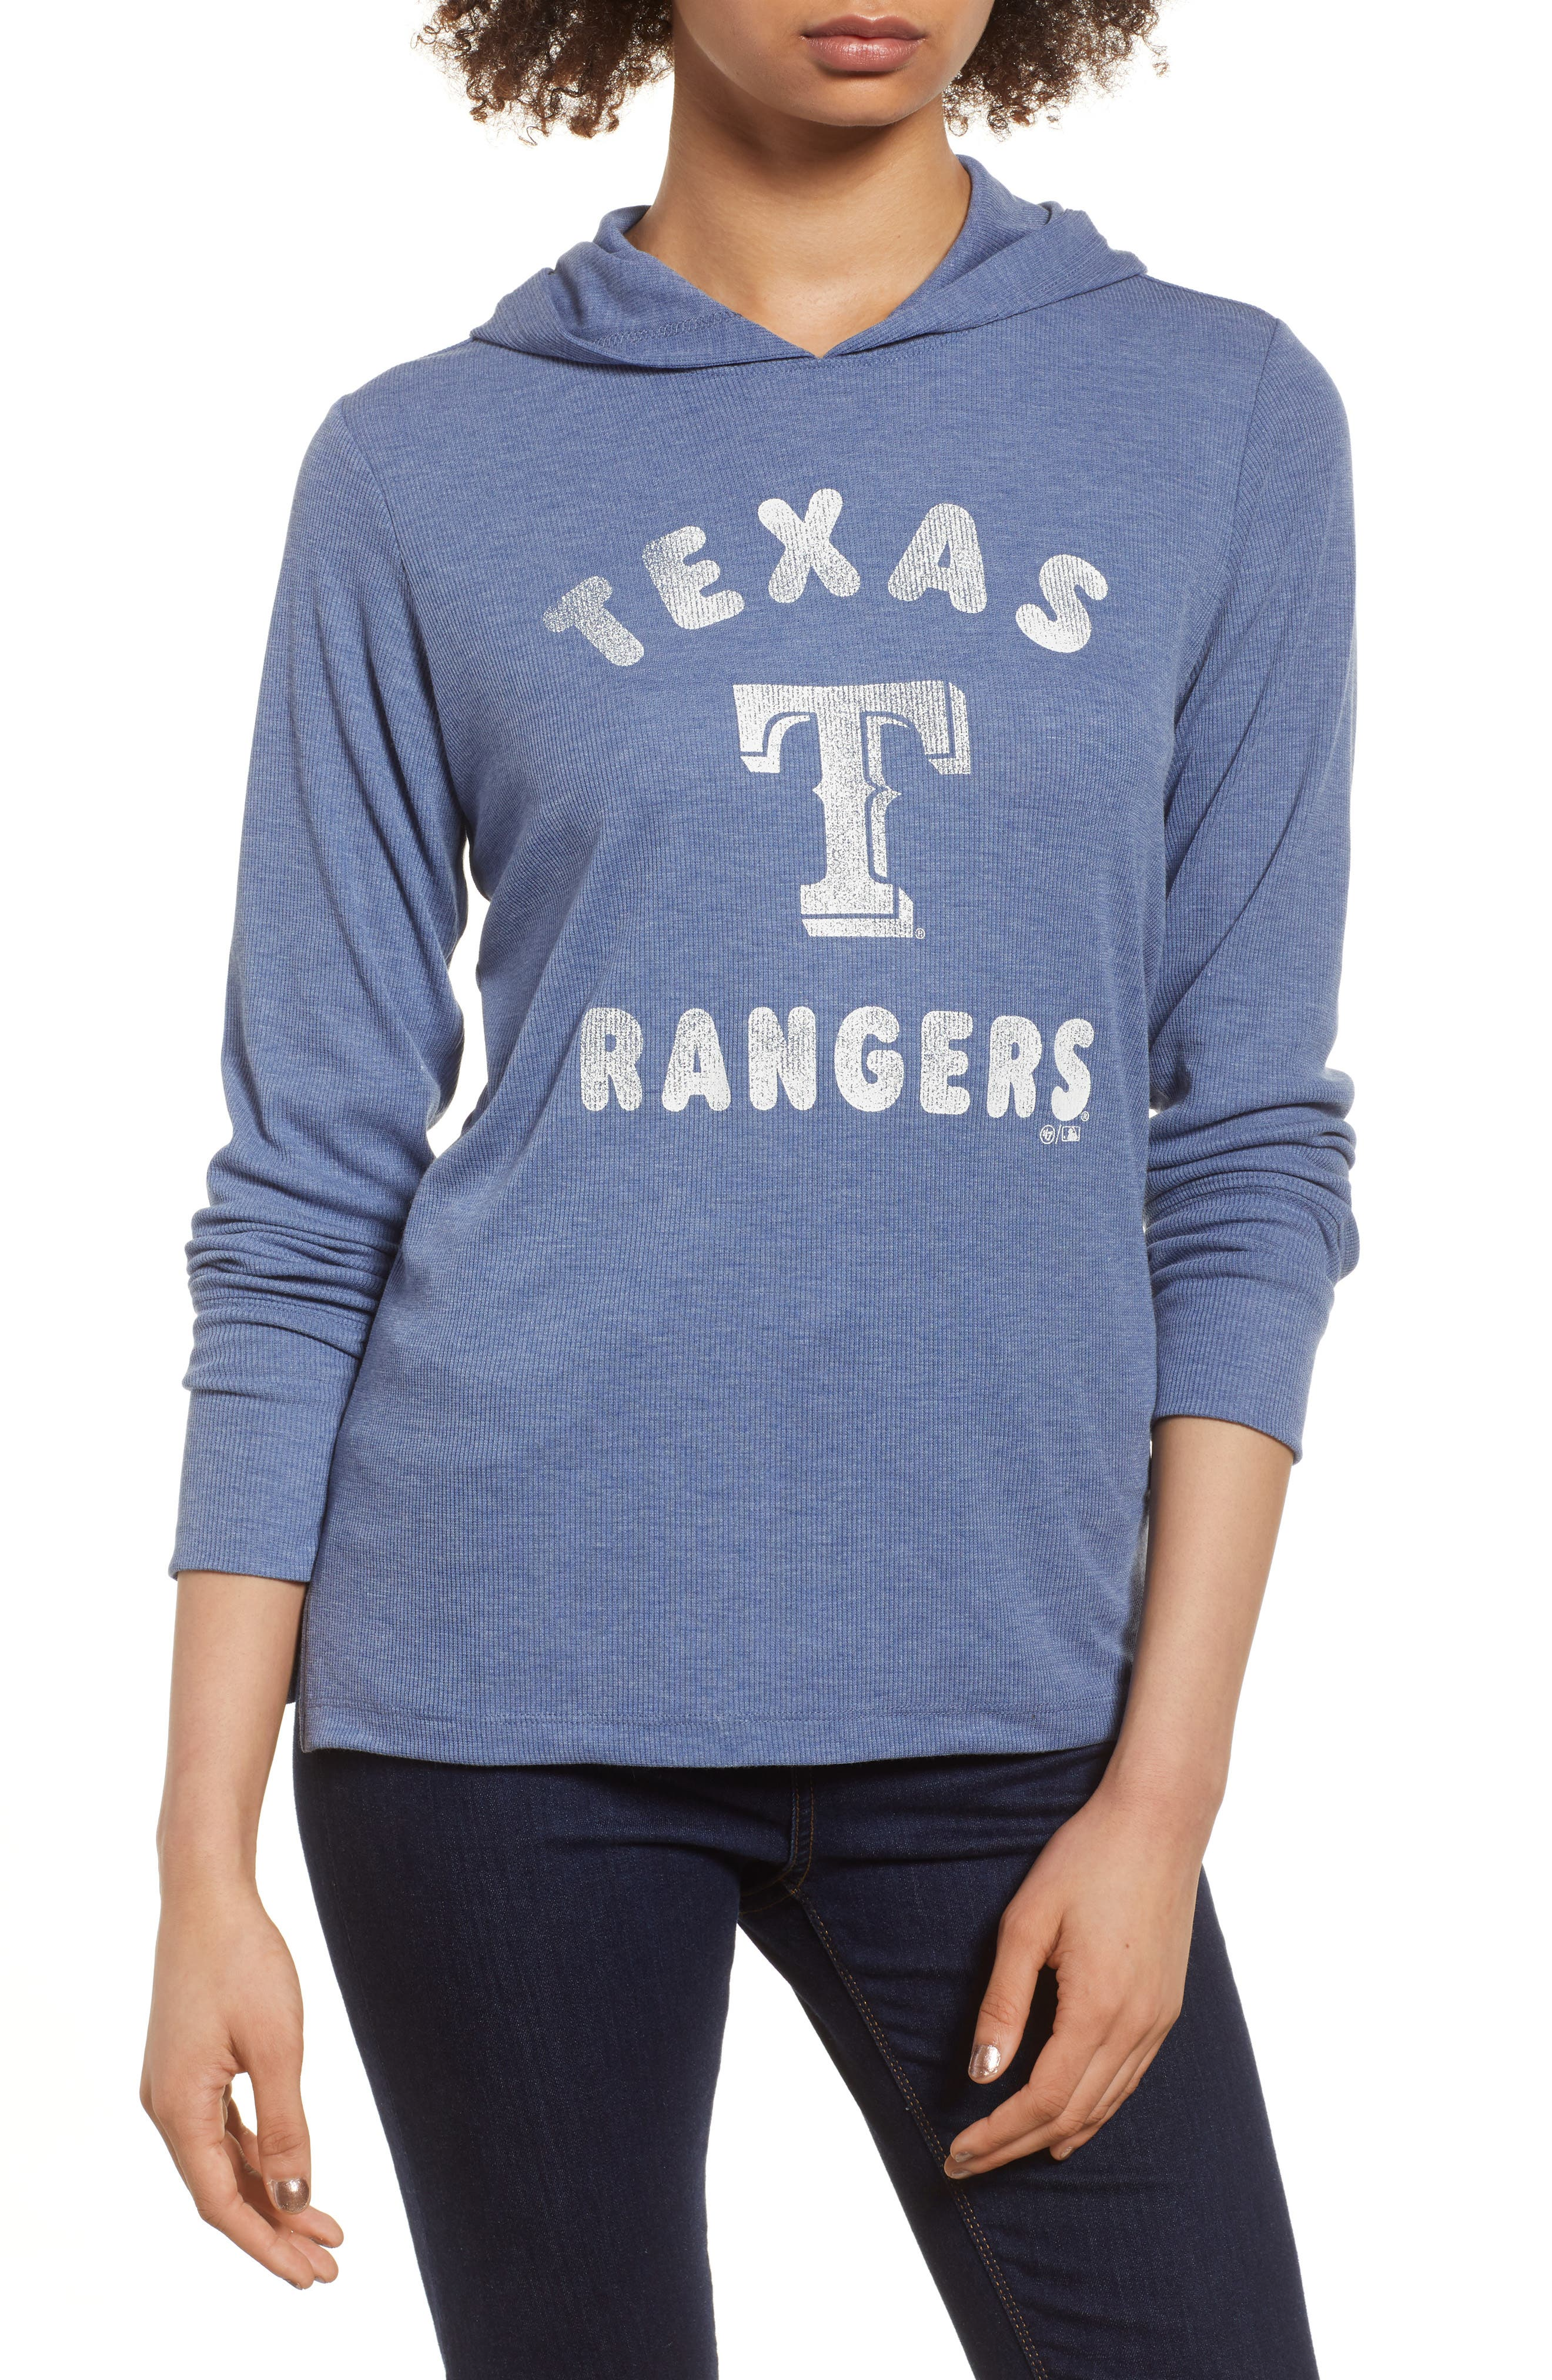 Campbell Texas Rangers Rib Knit Hooded Top,                         Main,                         color, 400